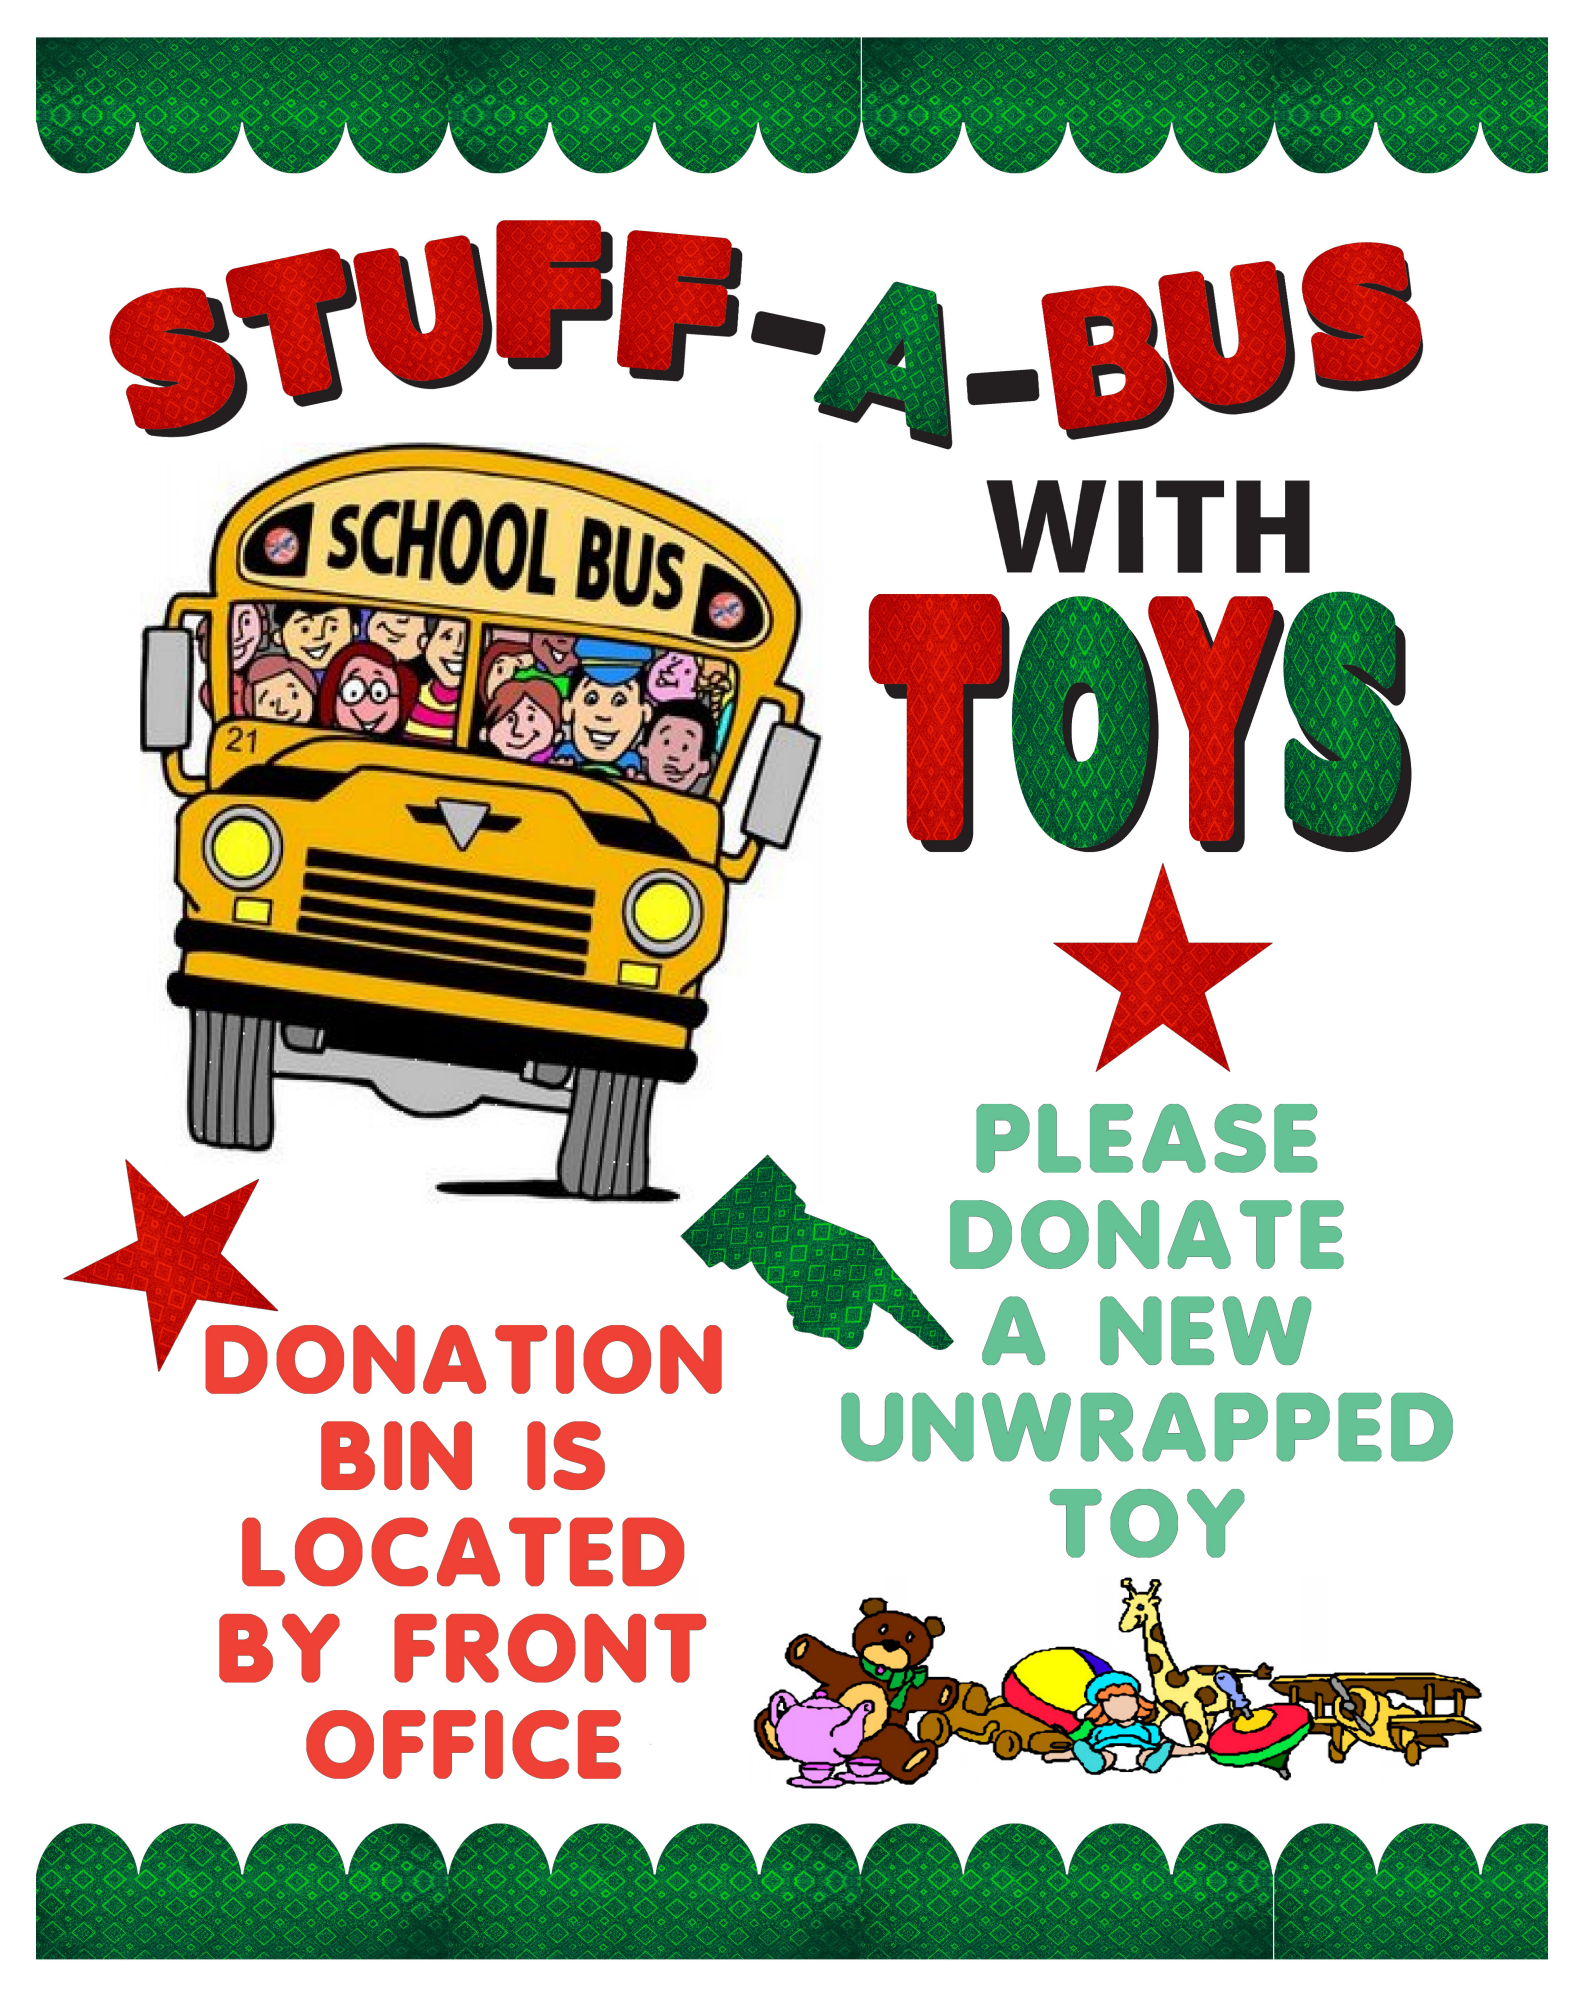 Holiday Toy Drive Fundraiser Poster Ideas Fundraising